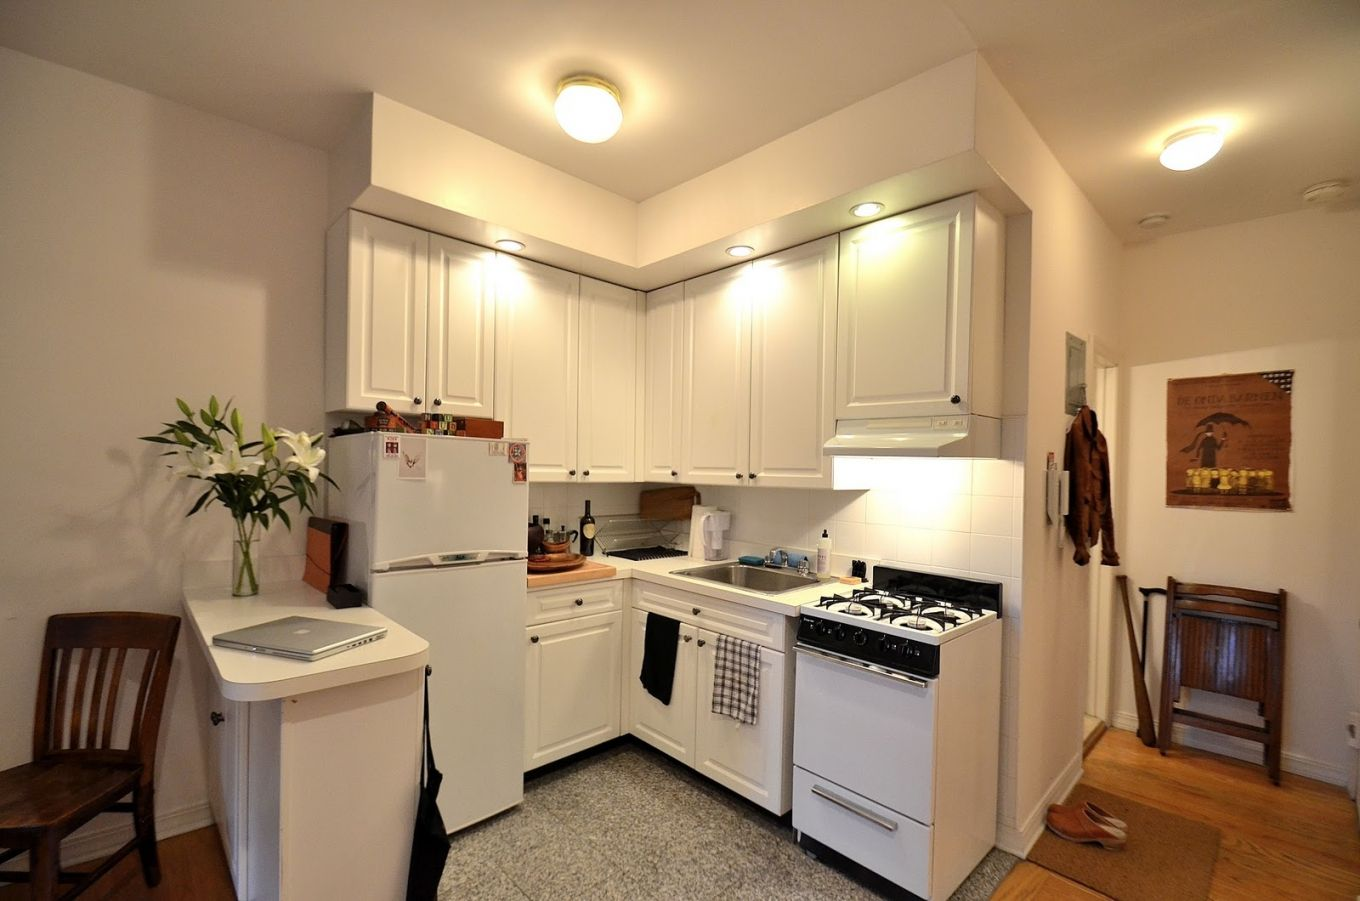 small kitchen setup ideas design for decorating wall set interior ...